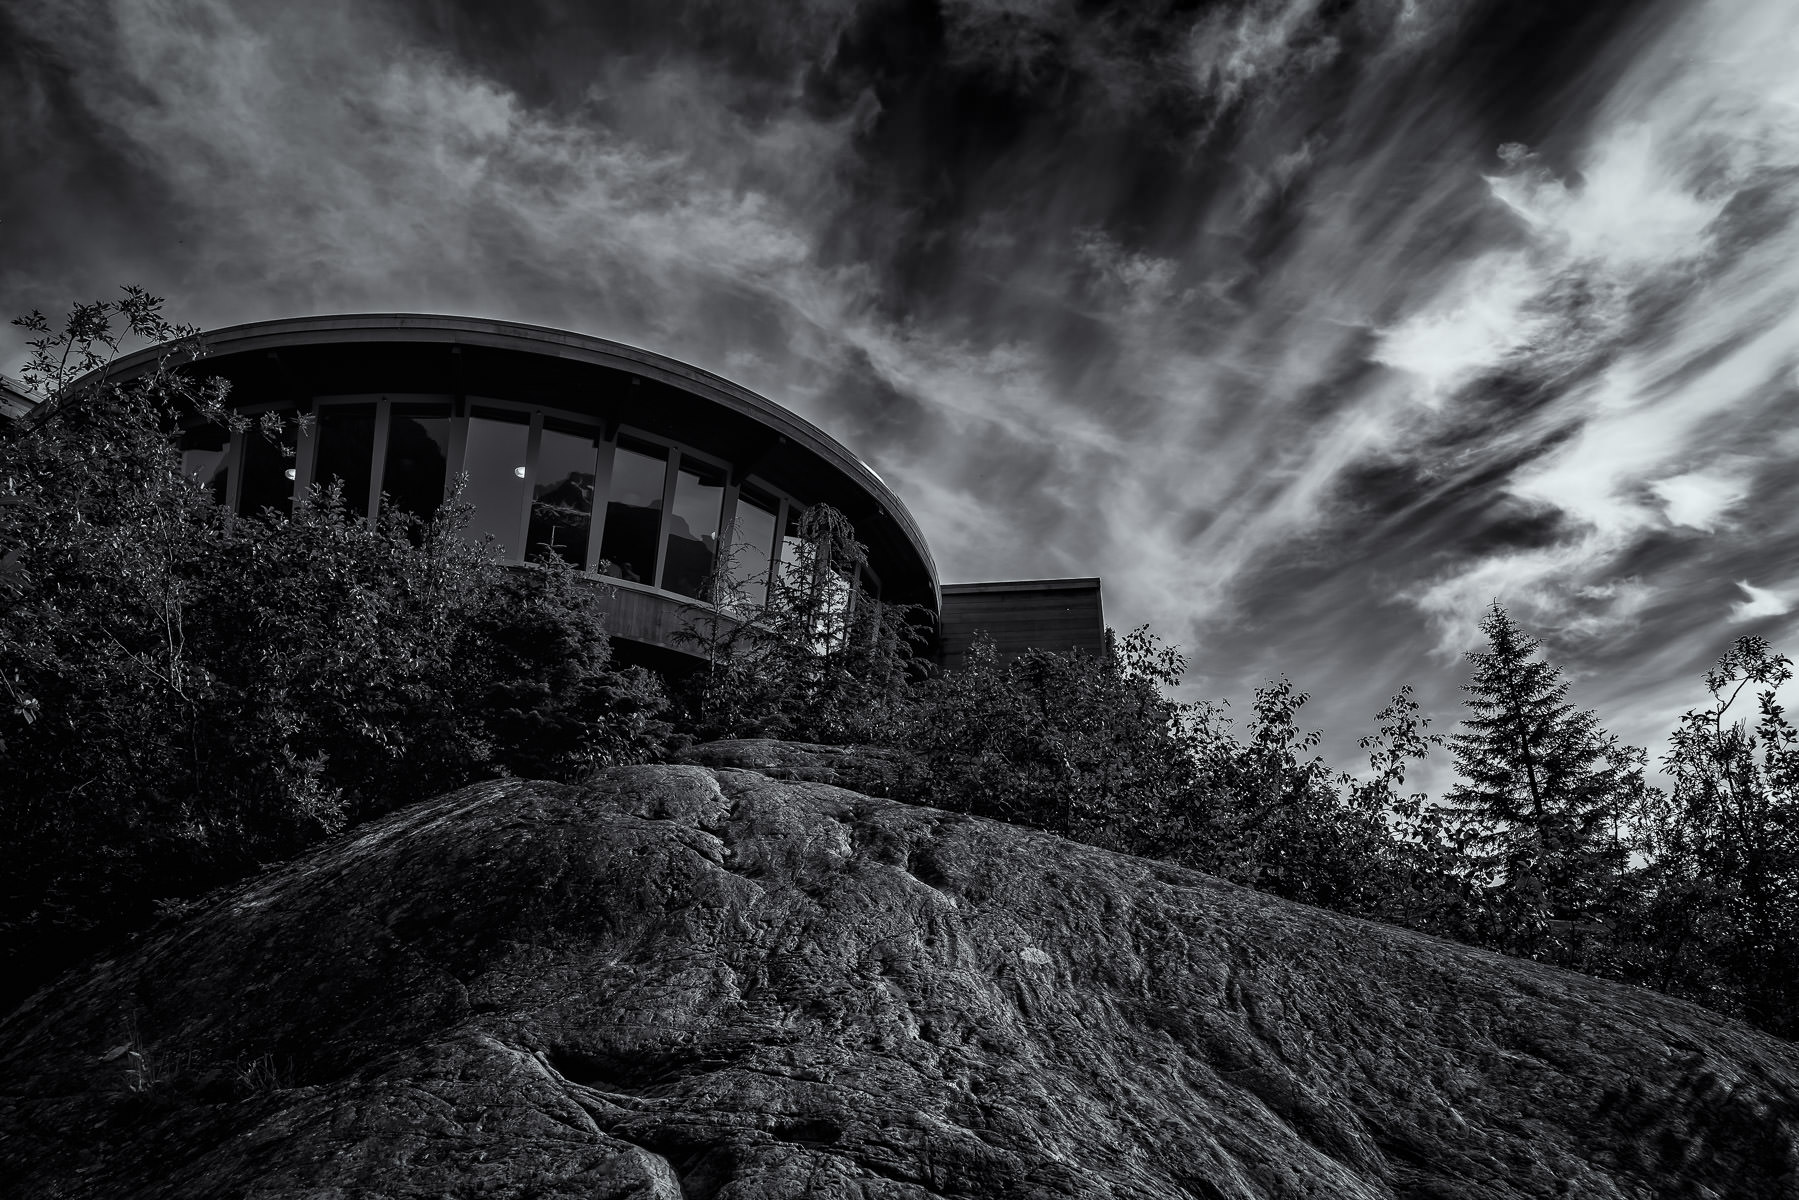 The visitors' center at Mendenhall Glacier in Juneau, Alaska, resembles a UFO that has landed atop a rocky outcropping.